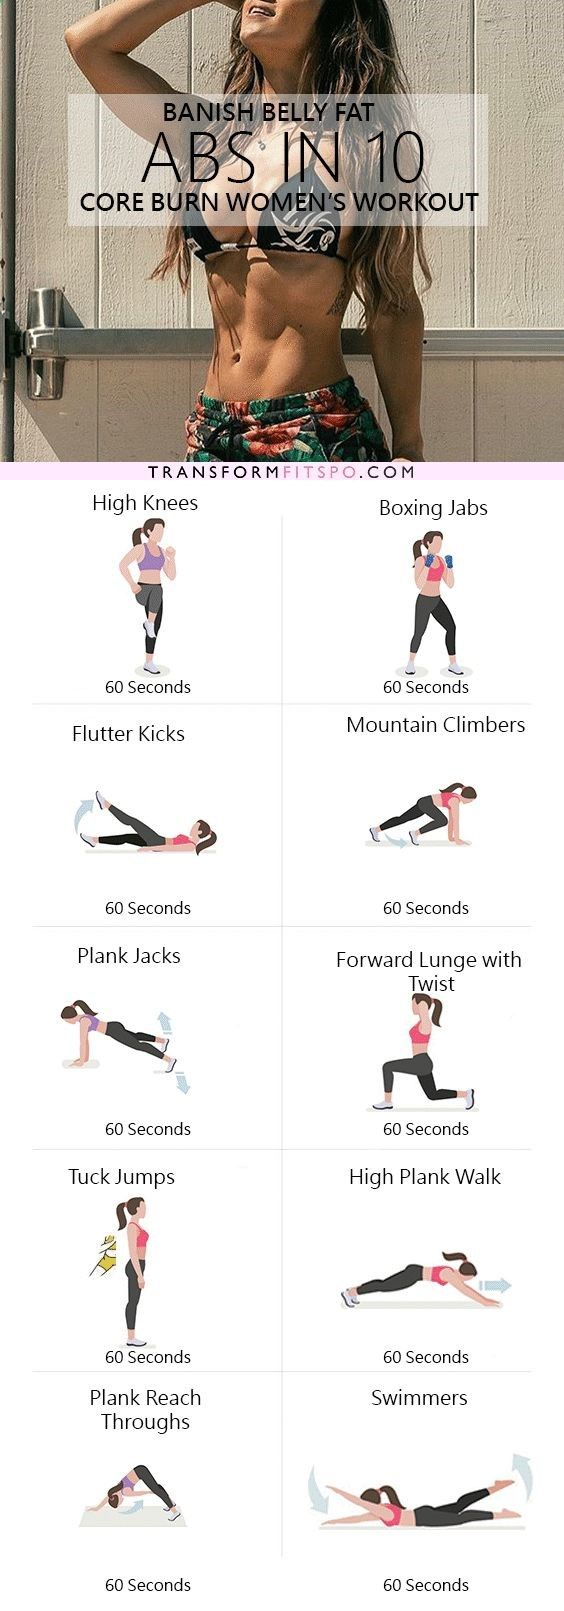 Repin and share if you easily shifted belly fat with this crazy effective workout! Read the post for the full workout.